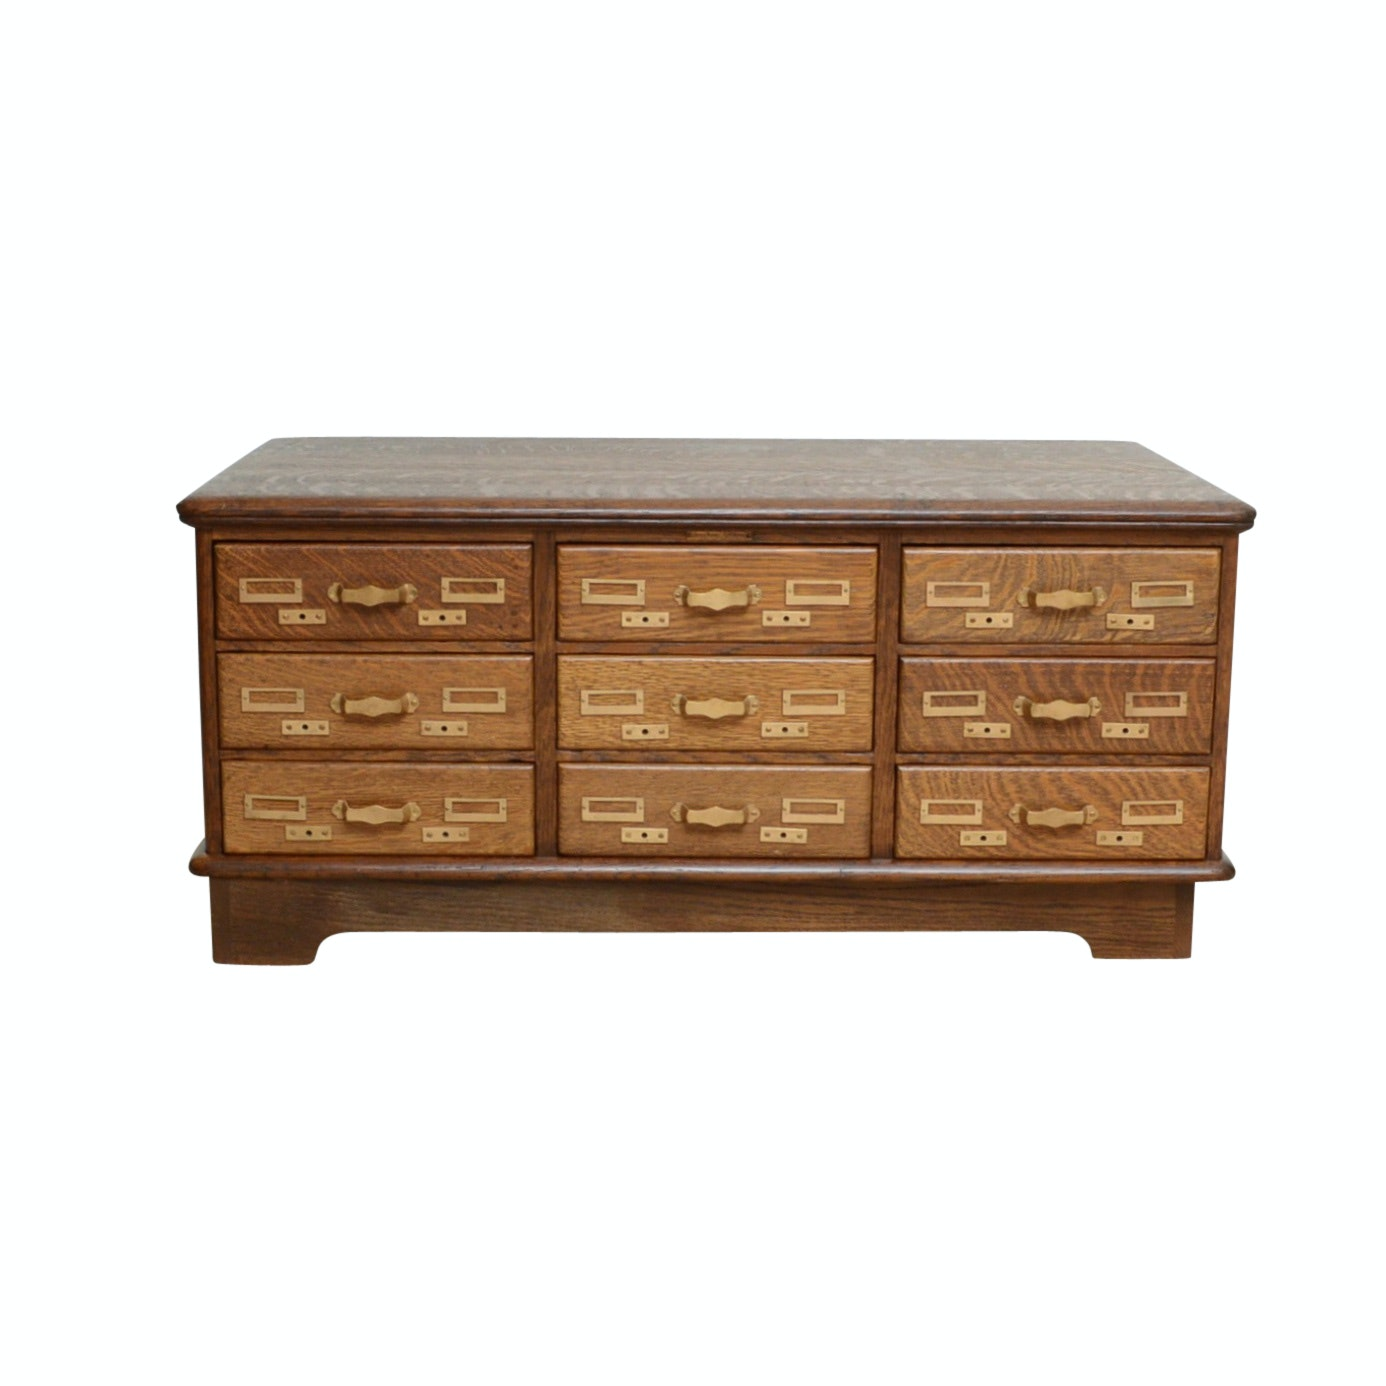 Antique Oak Card Cataloger Turned Coffee Table